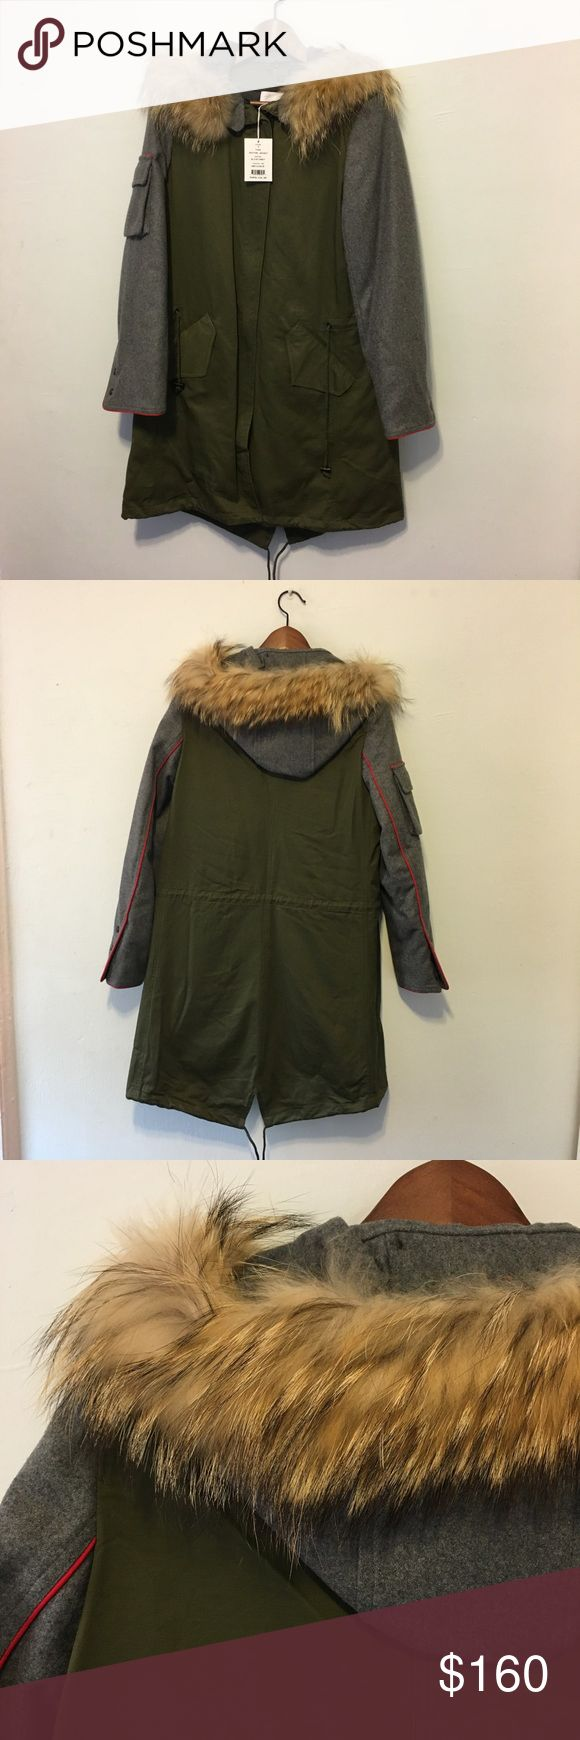 Walter Baker Fur Parka Olive green fur parka from Walter Baker.  100% real fur.  Never worn with tags.  Beautiful worn because the parka has very luxurious fur. Walter Baker Jackets & Coats Puffers